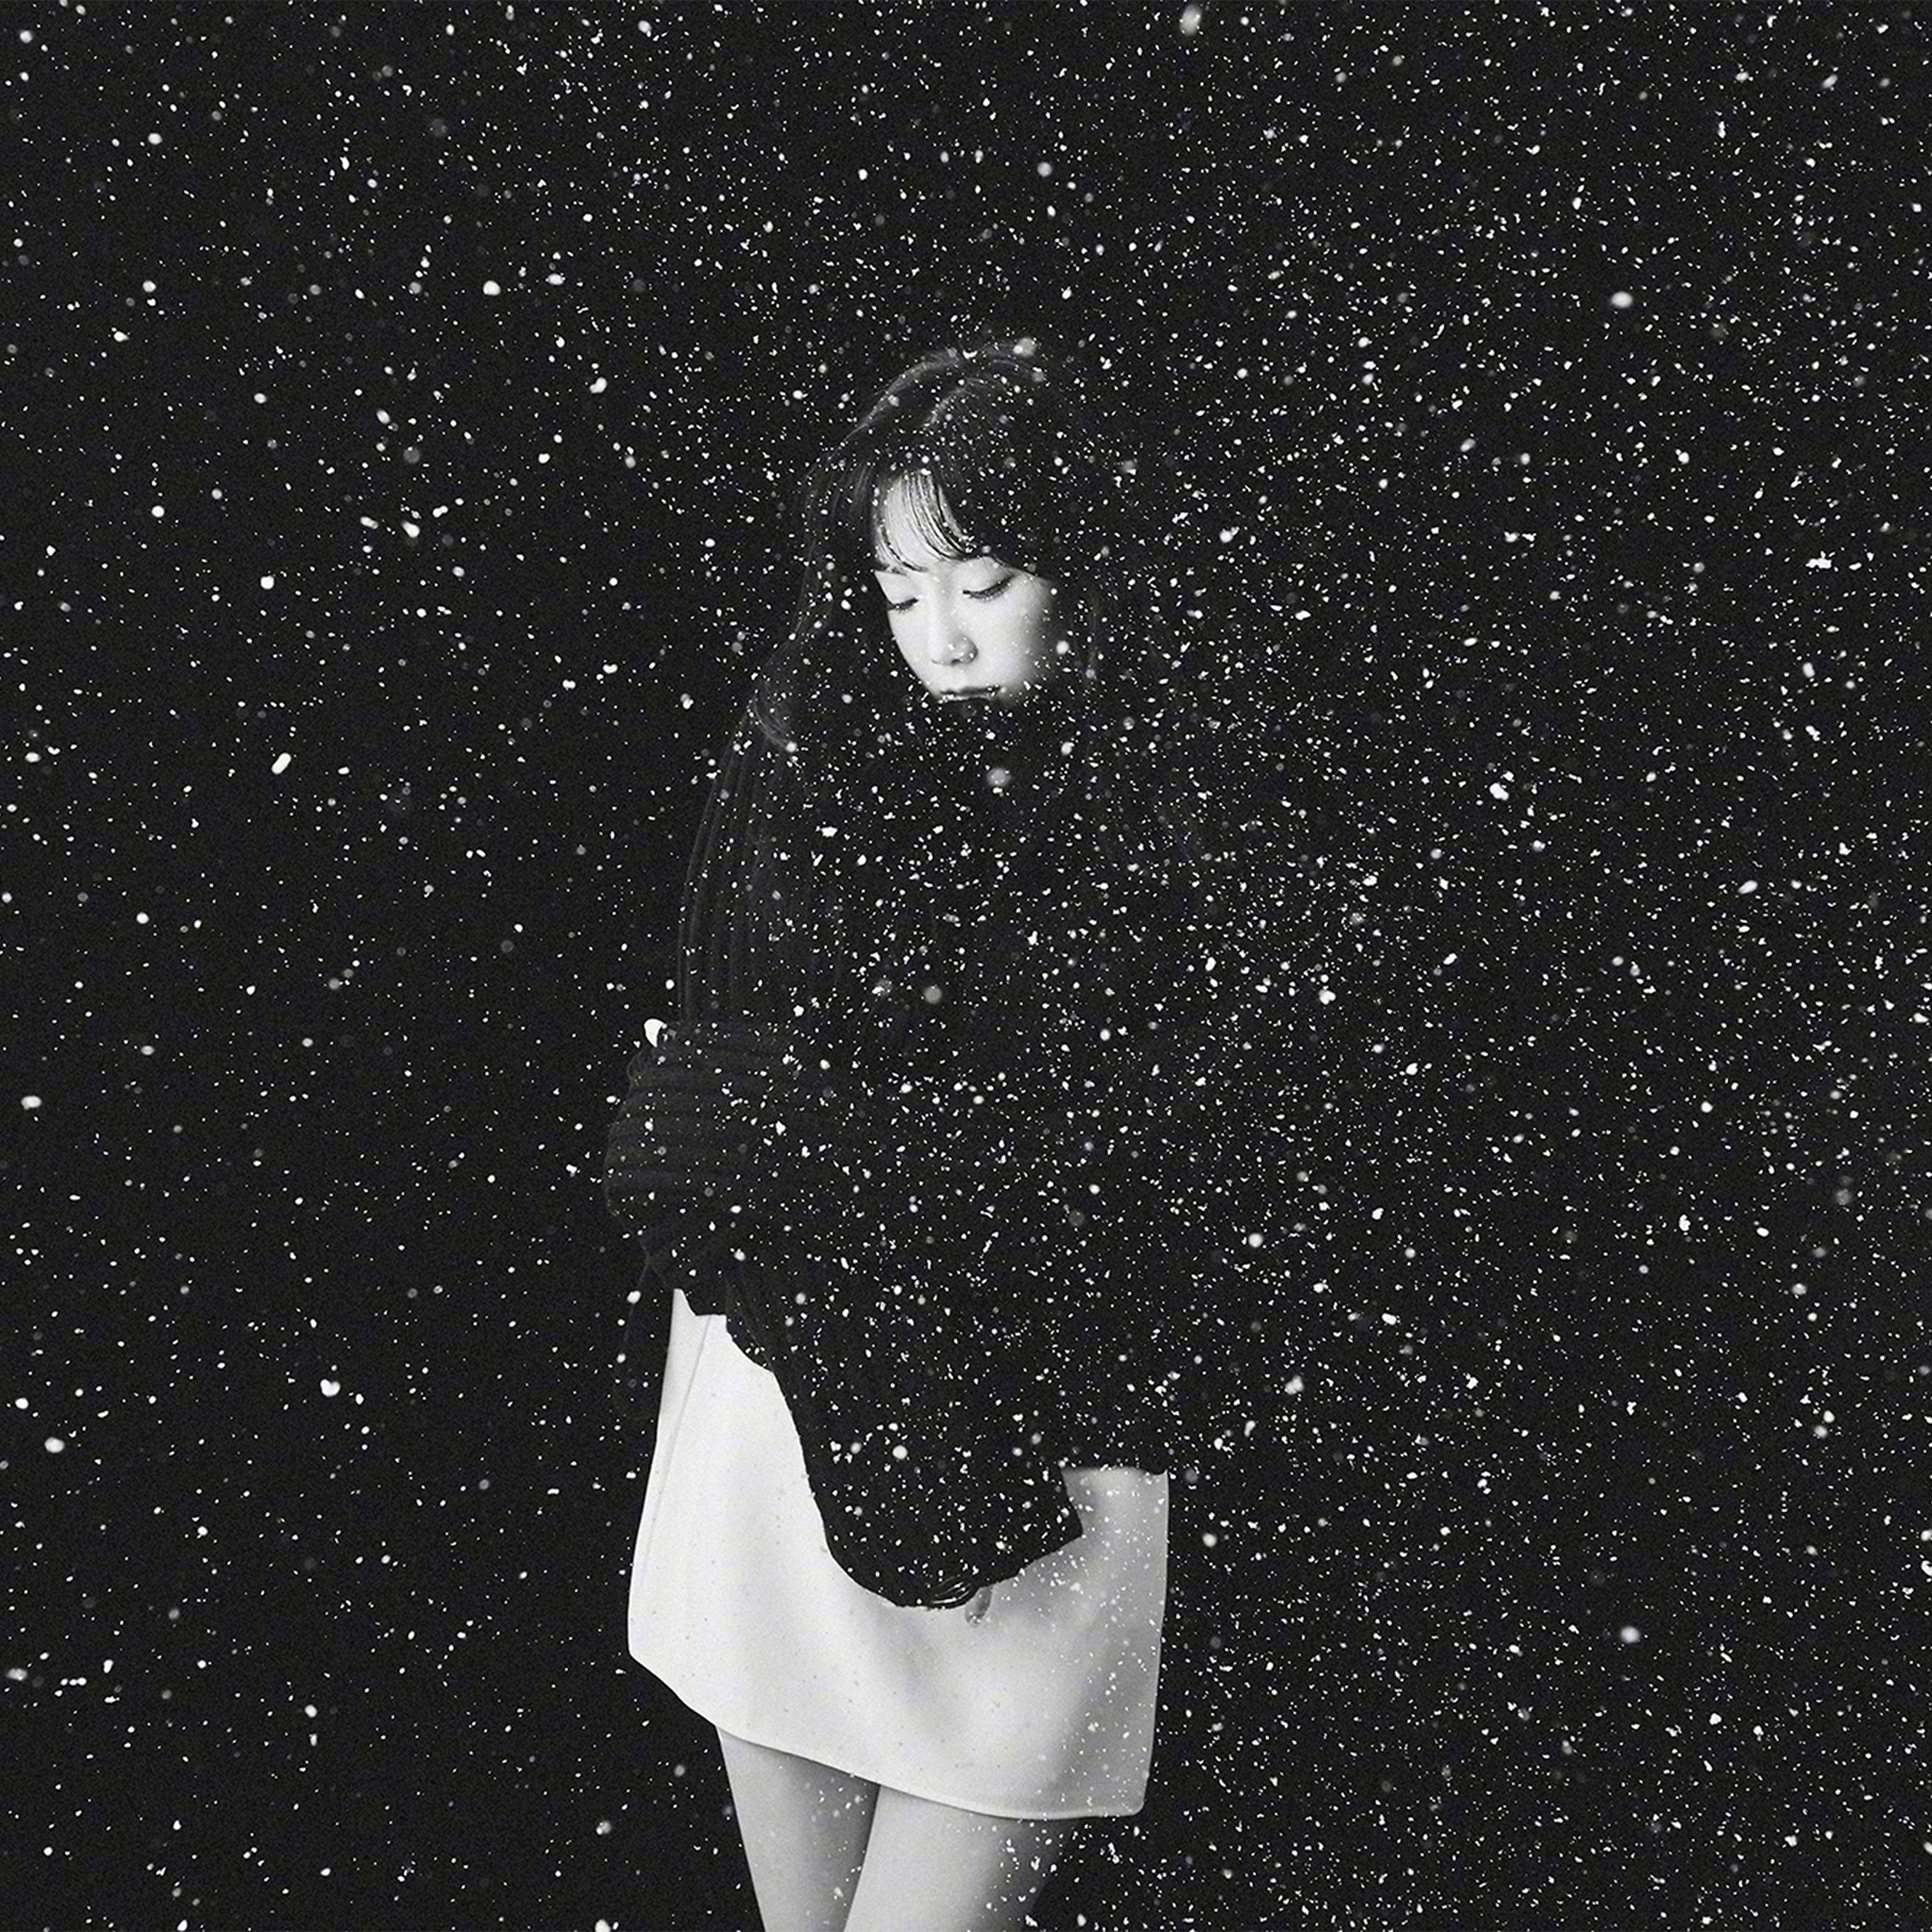 Ho98-snow-girl-snsd-taeyeon-black-bw-kpop-wallpaper